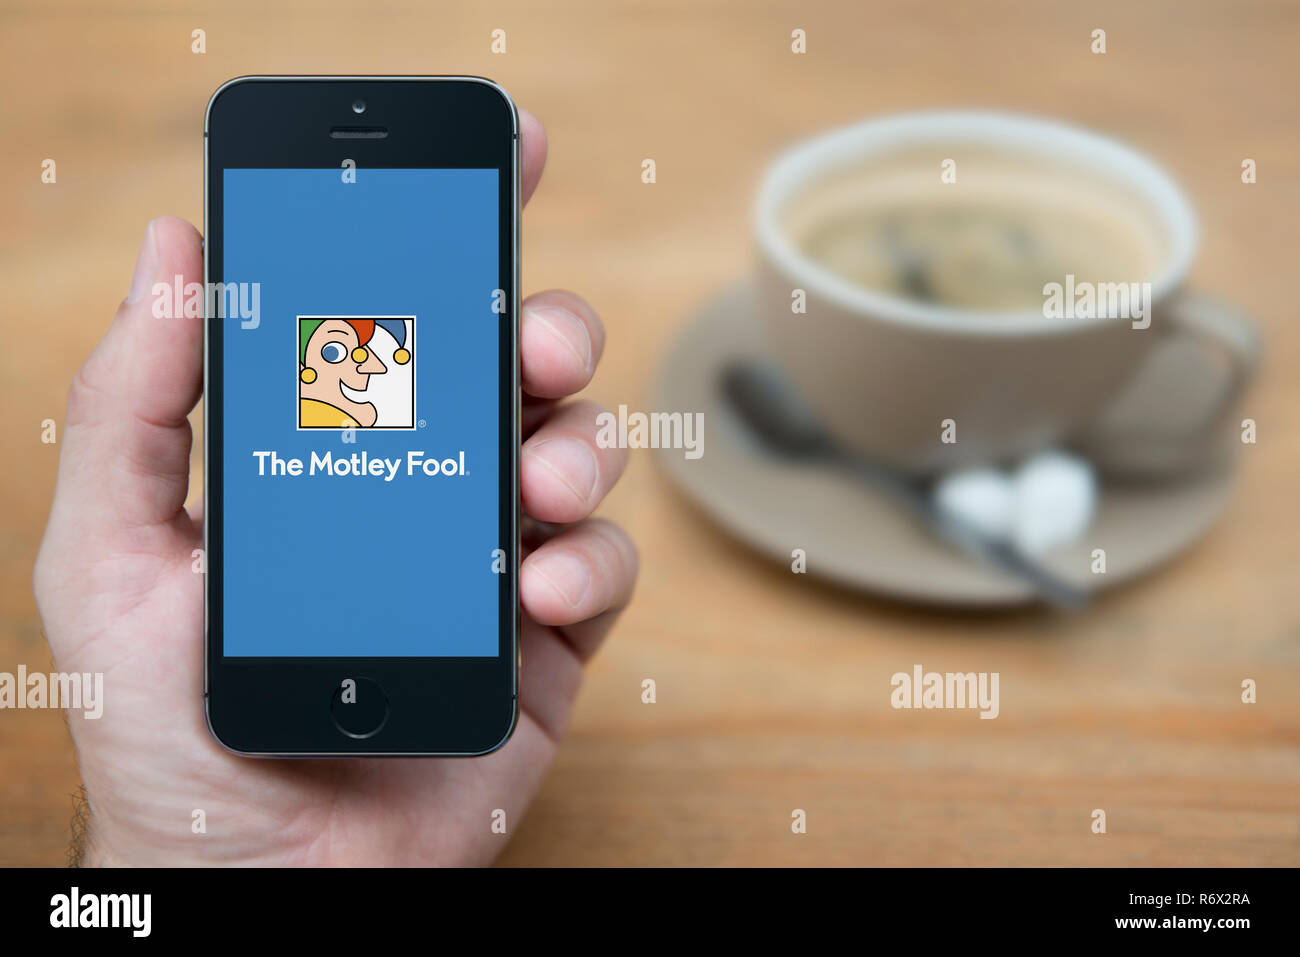 A man looks at his iPhone which displays the Motley Fool logo (Editorial use only). - Stock Image